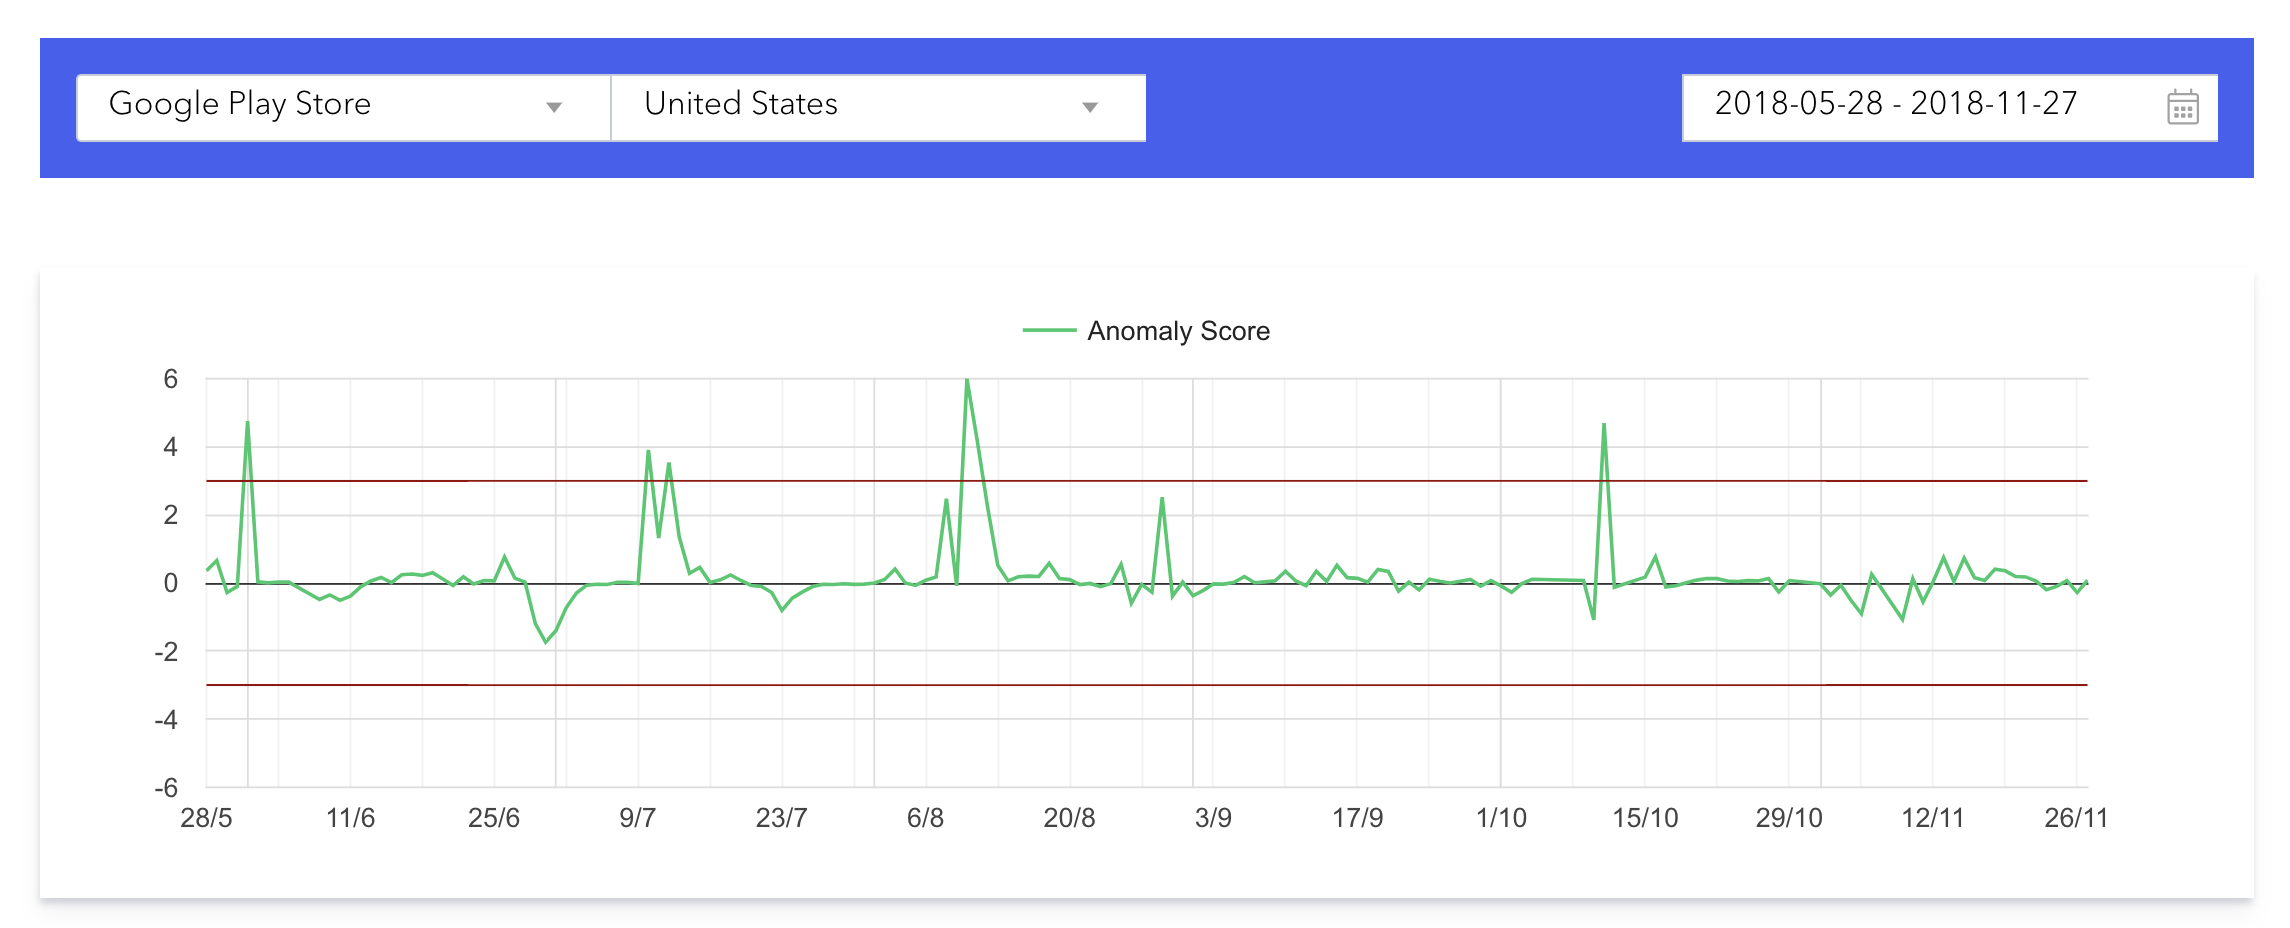 The keyword ranking algorithm changes detected in the US Play Store over the last 6 months